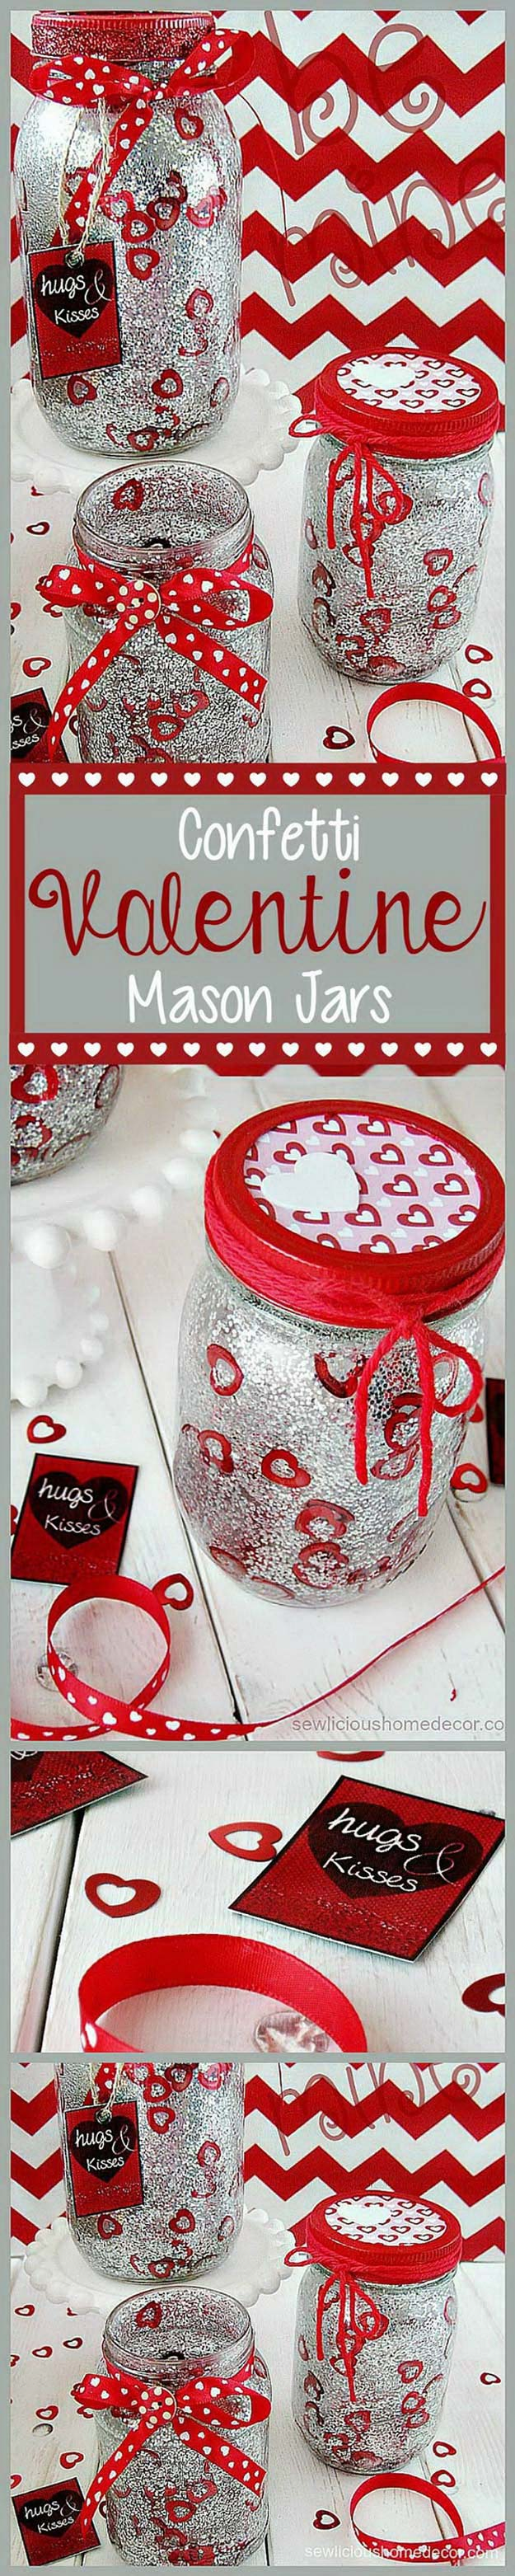 Best Mason Jar Valentine Crafts - Red Valentine Jars with Glitter and Confetti - Cute Mason Jar Valentines Day Gifts and Crafts | Easy DIY Ideas for Valentines Day for Homemade Gift Giving and Room Decor | Creative Home Decor and Craft Projects for Teens, Teenagers, Kids and Adults